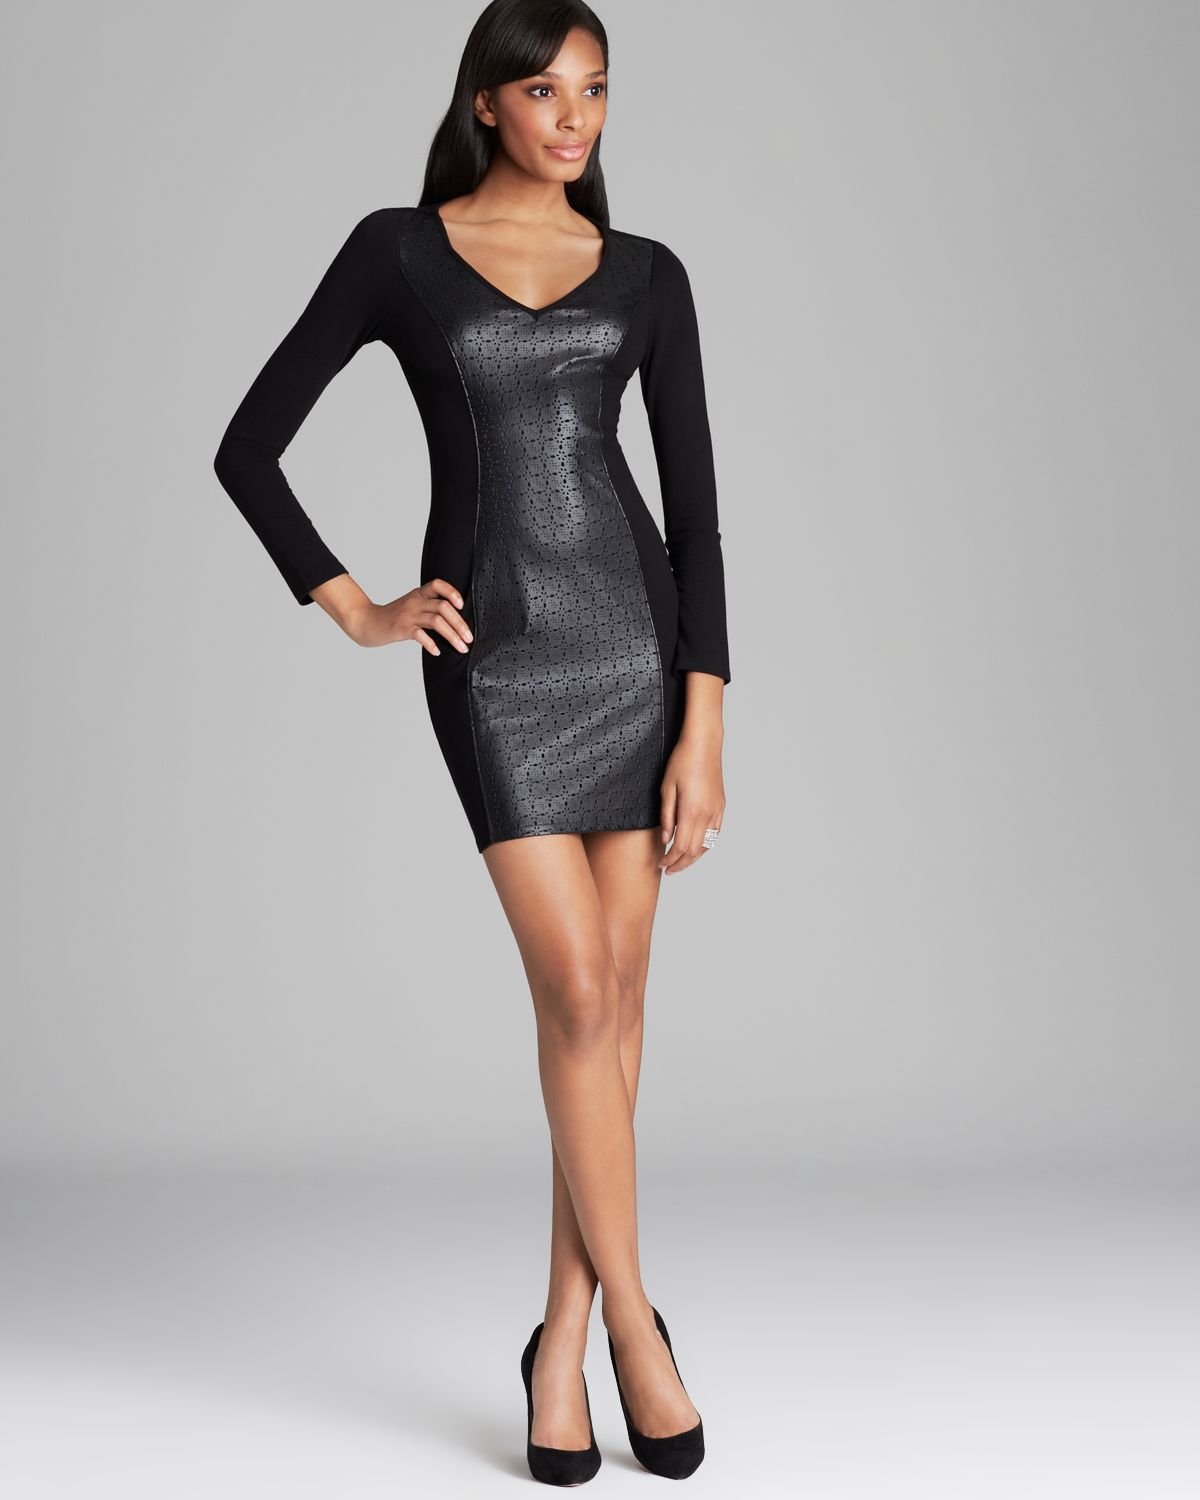 Ella moss Deborah Perforated Faux Leather Dress in Black | Lyst